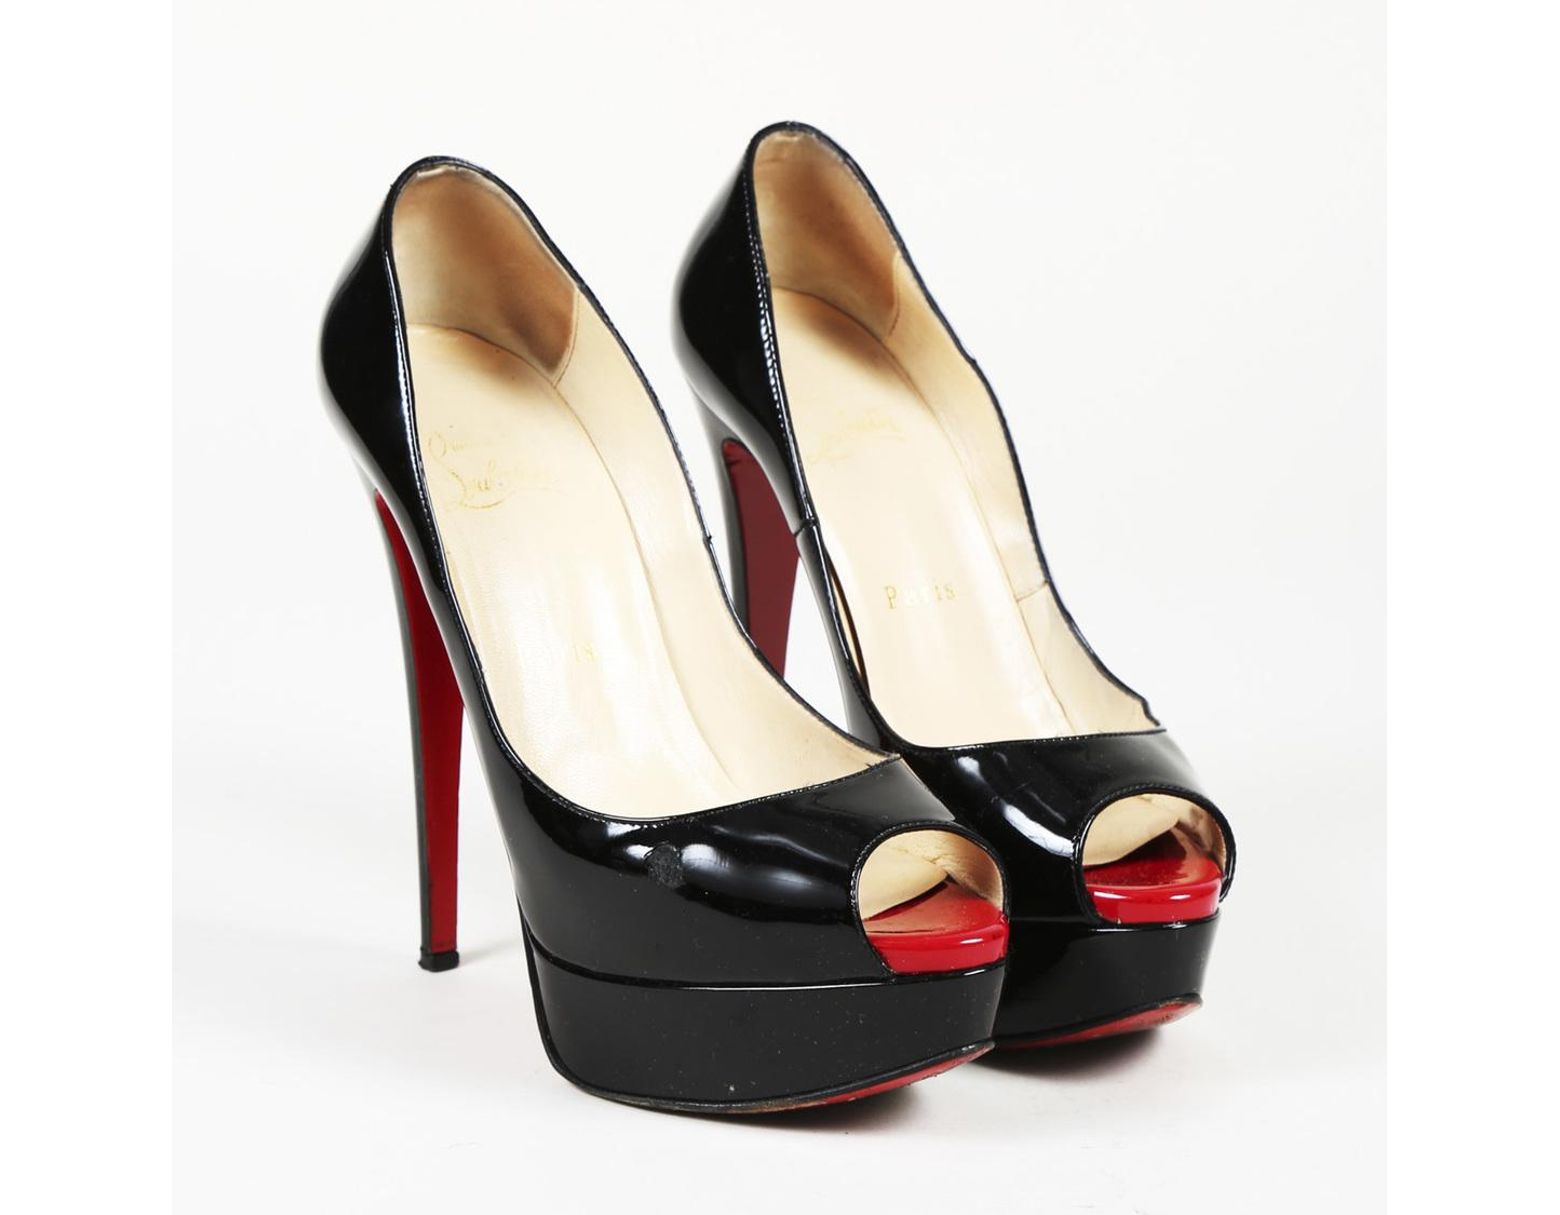 buy online a51c9 62f44 Women's Black Patent Leather